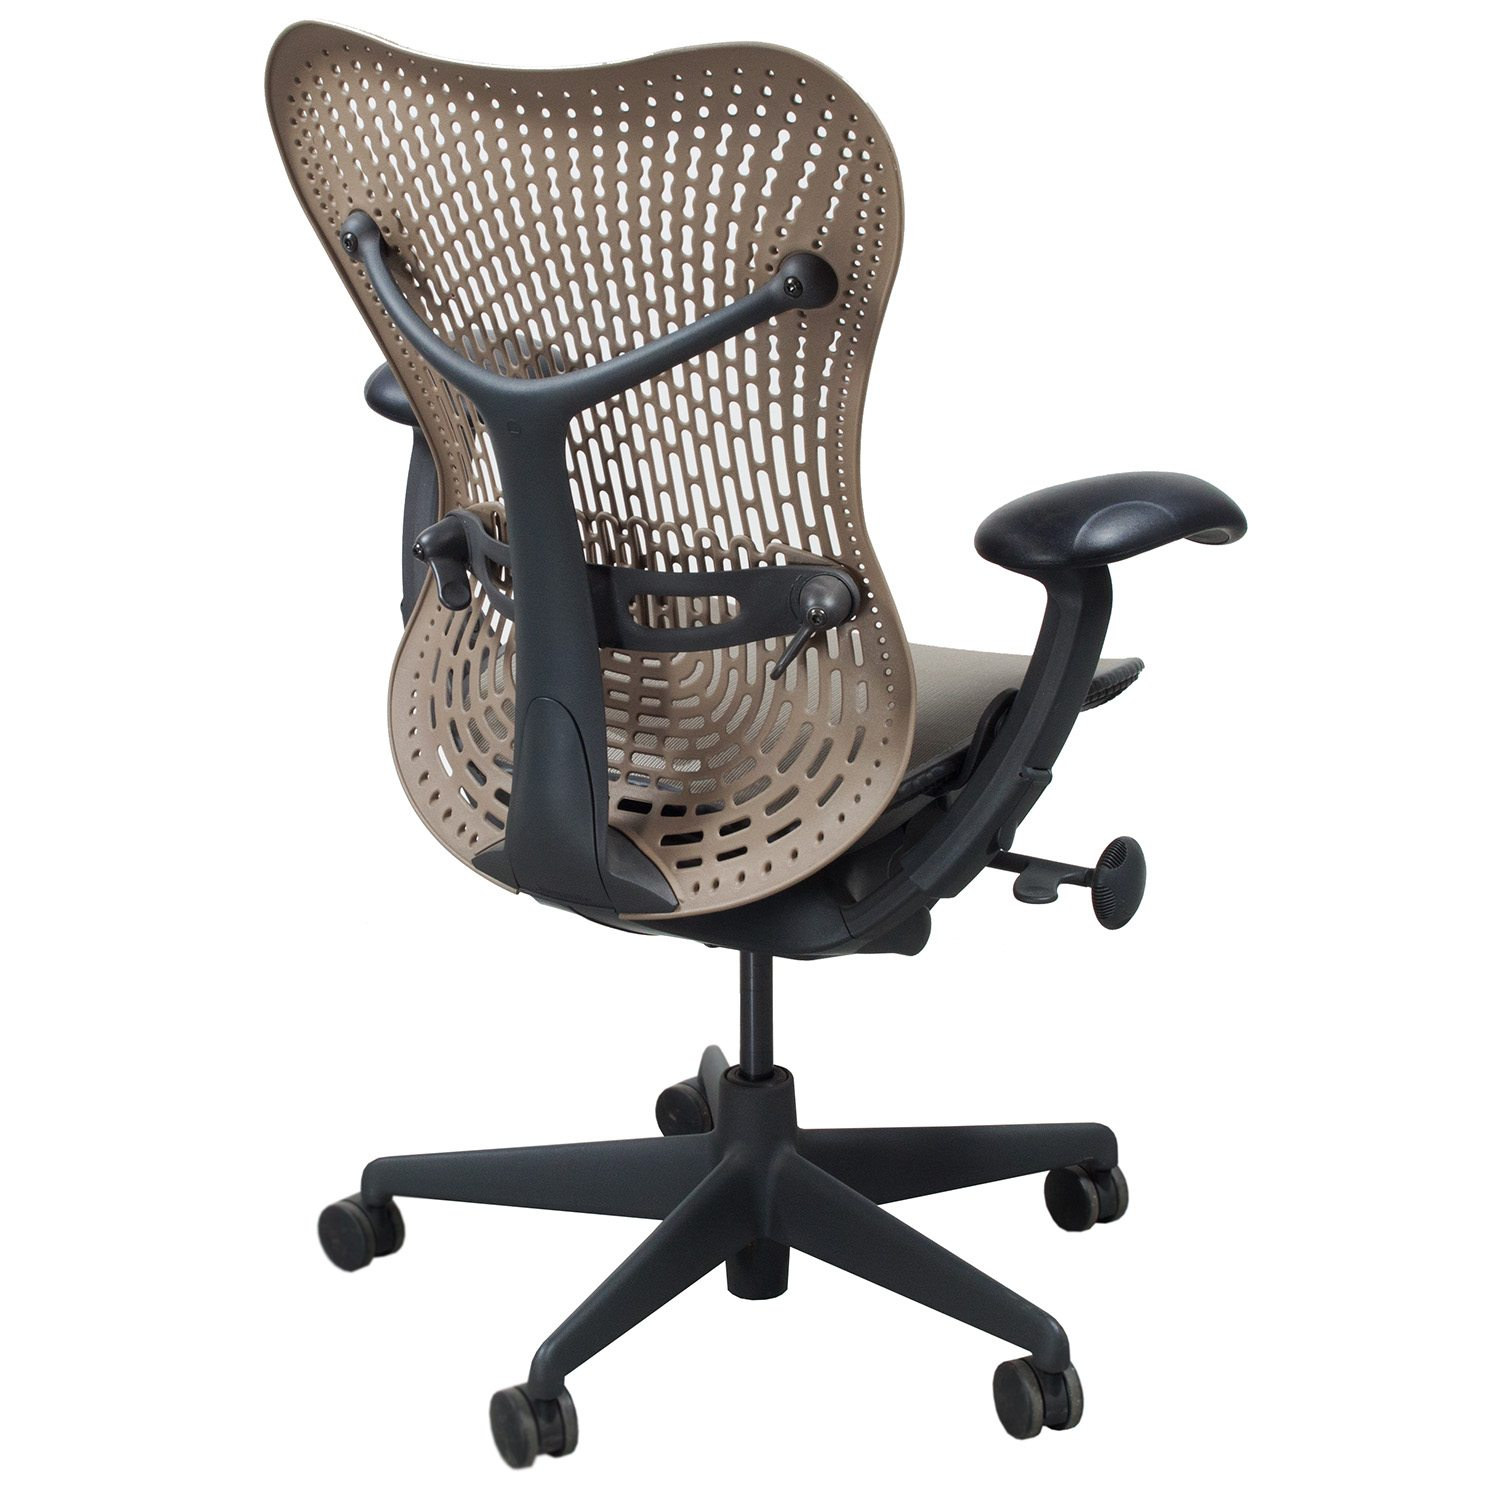 herman miller used office chairs french bistro table and uk mirra mesh airweave seat task chair